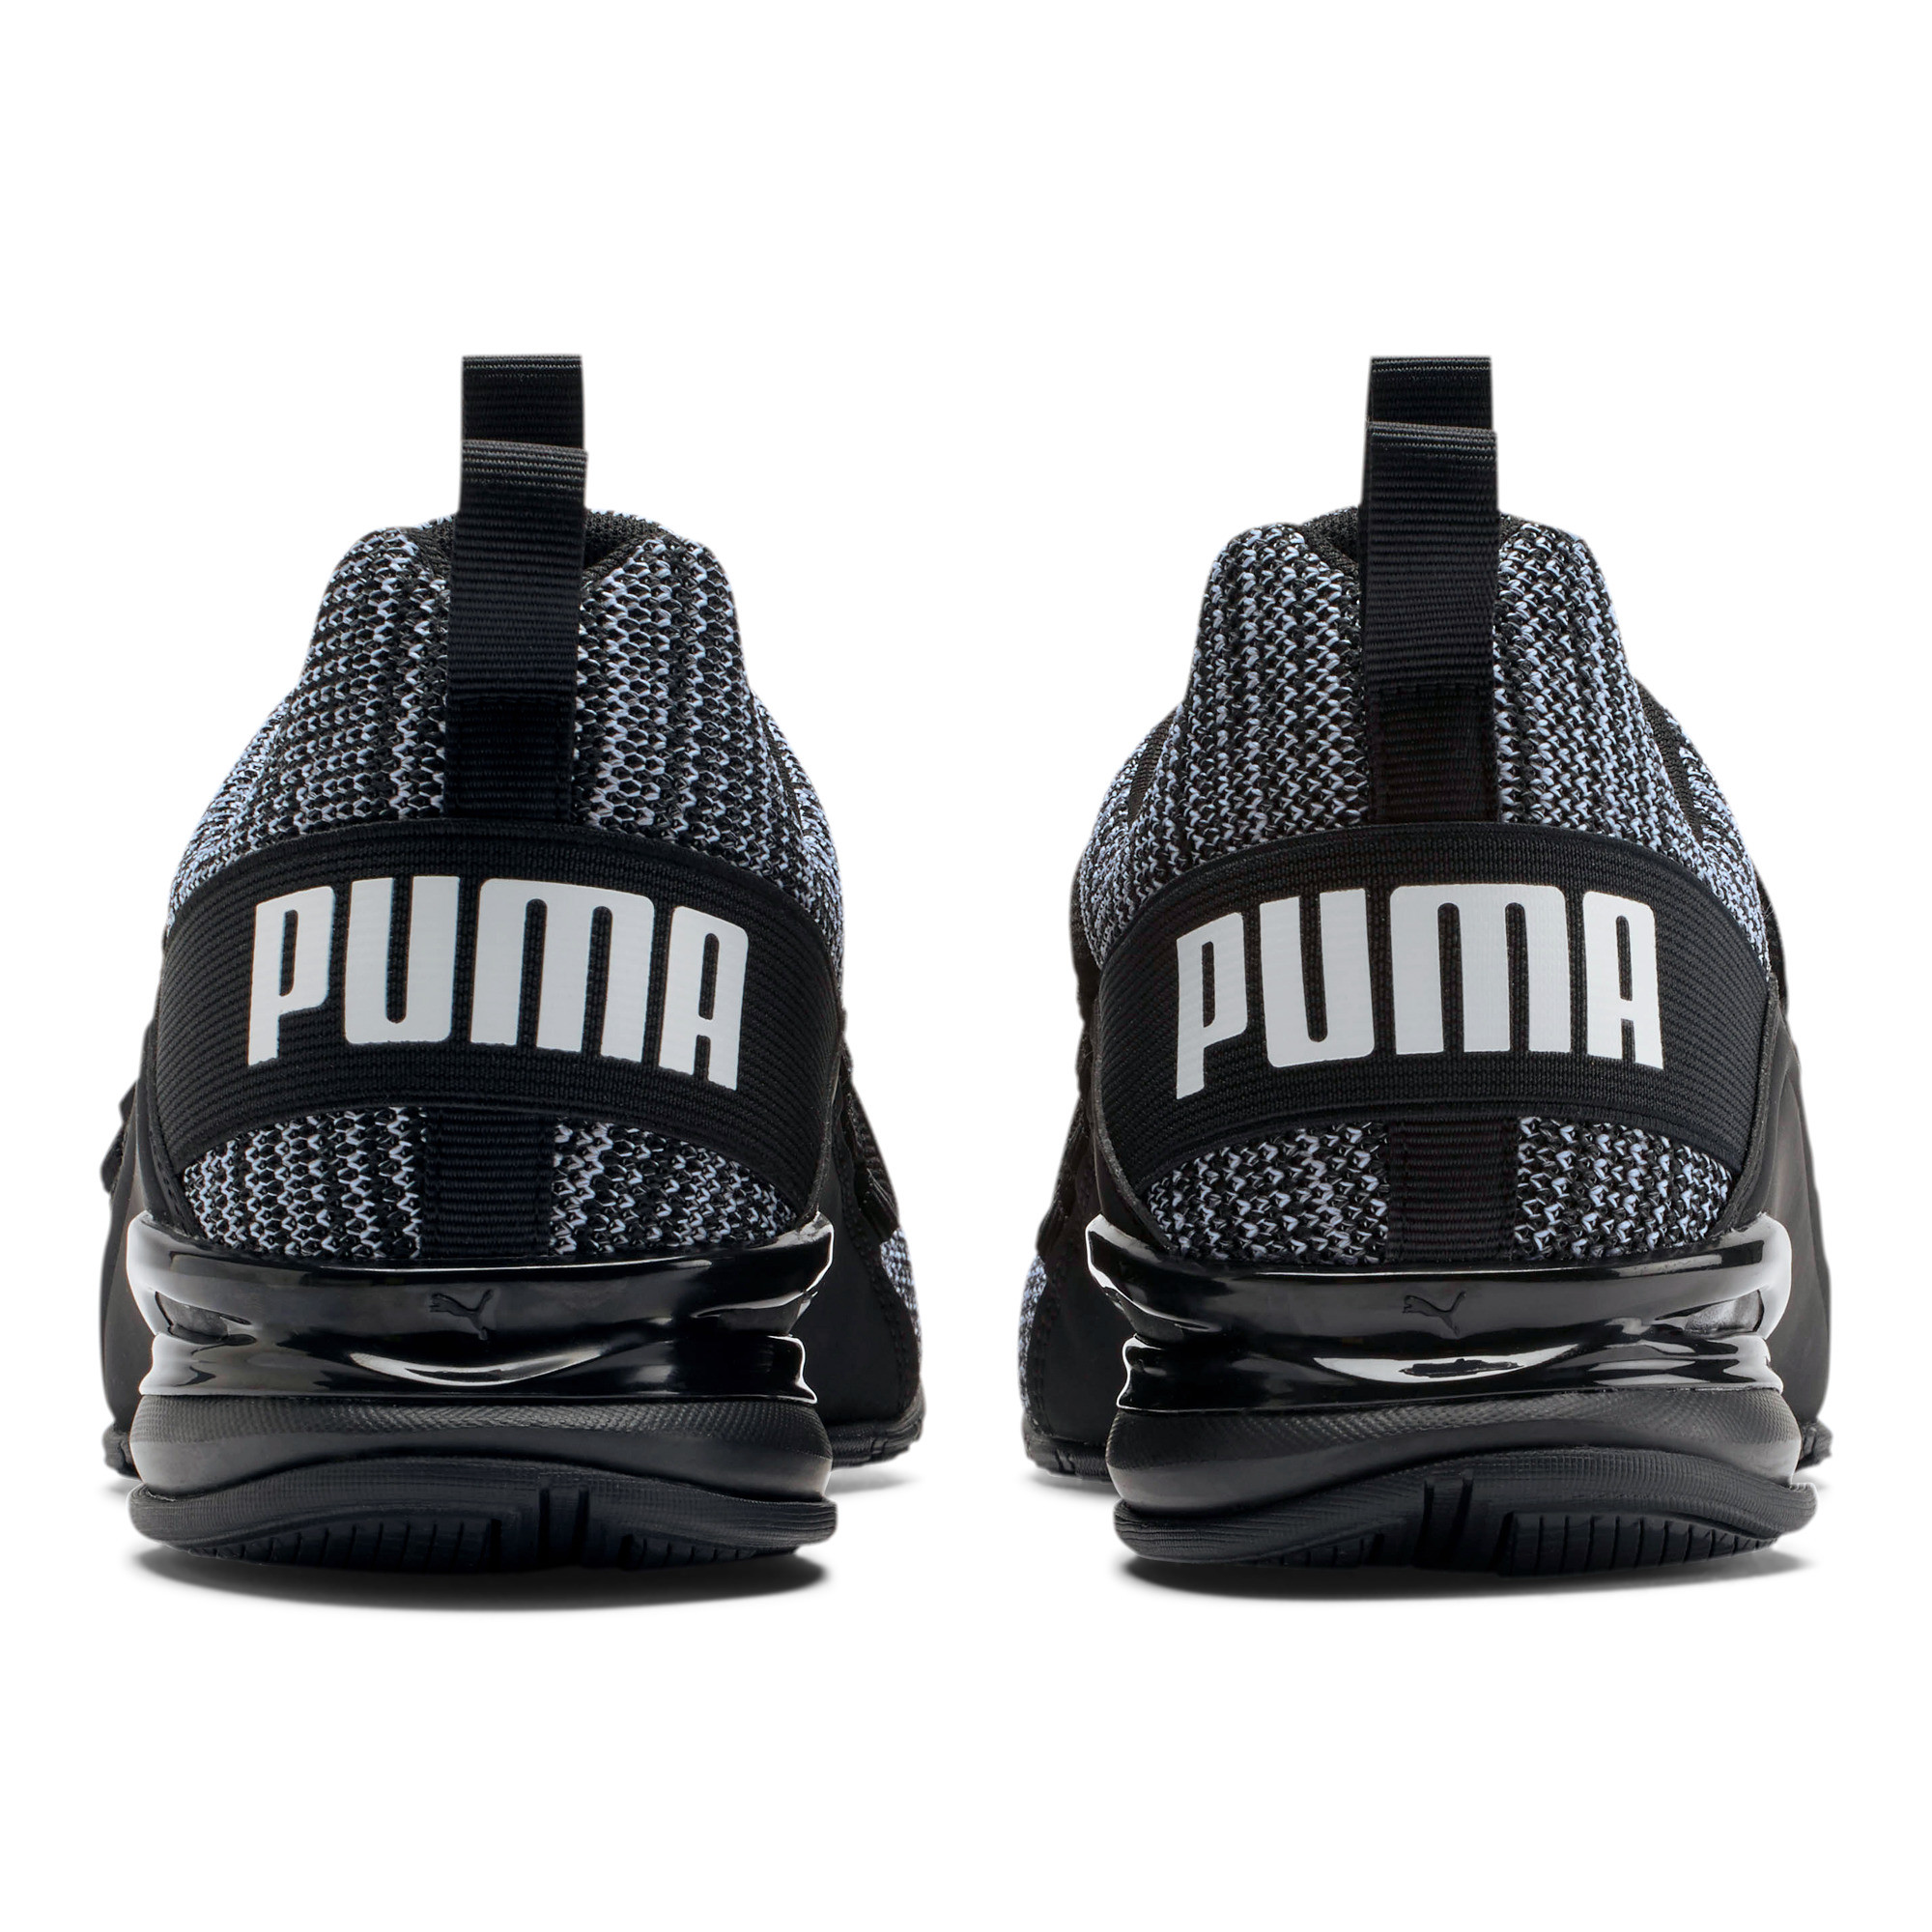 PUMA-Momenta-Men-039-s-Training-Shoes-Men-Shoe-Running thumbnail 3